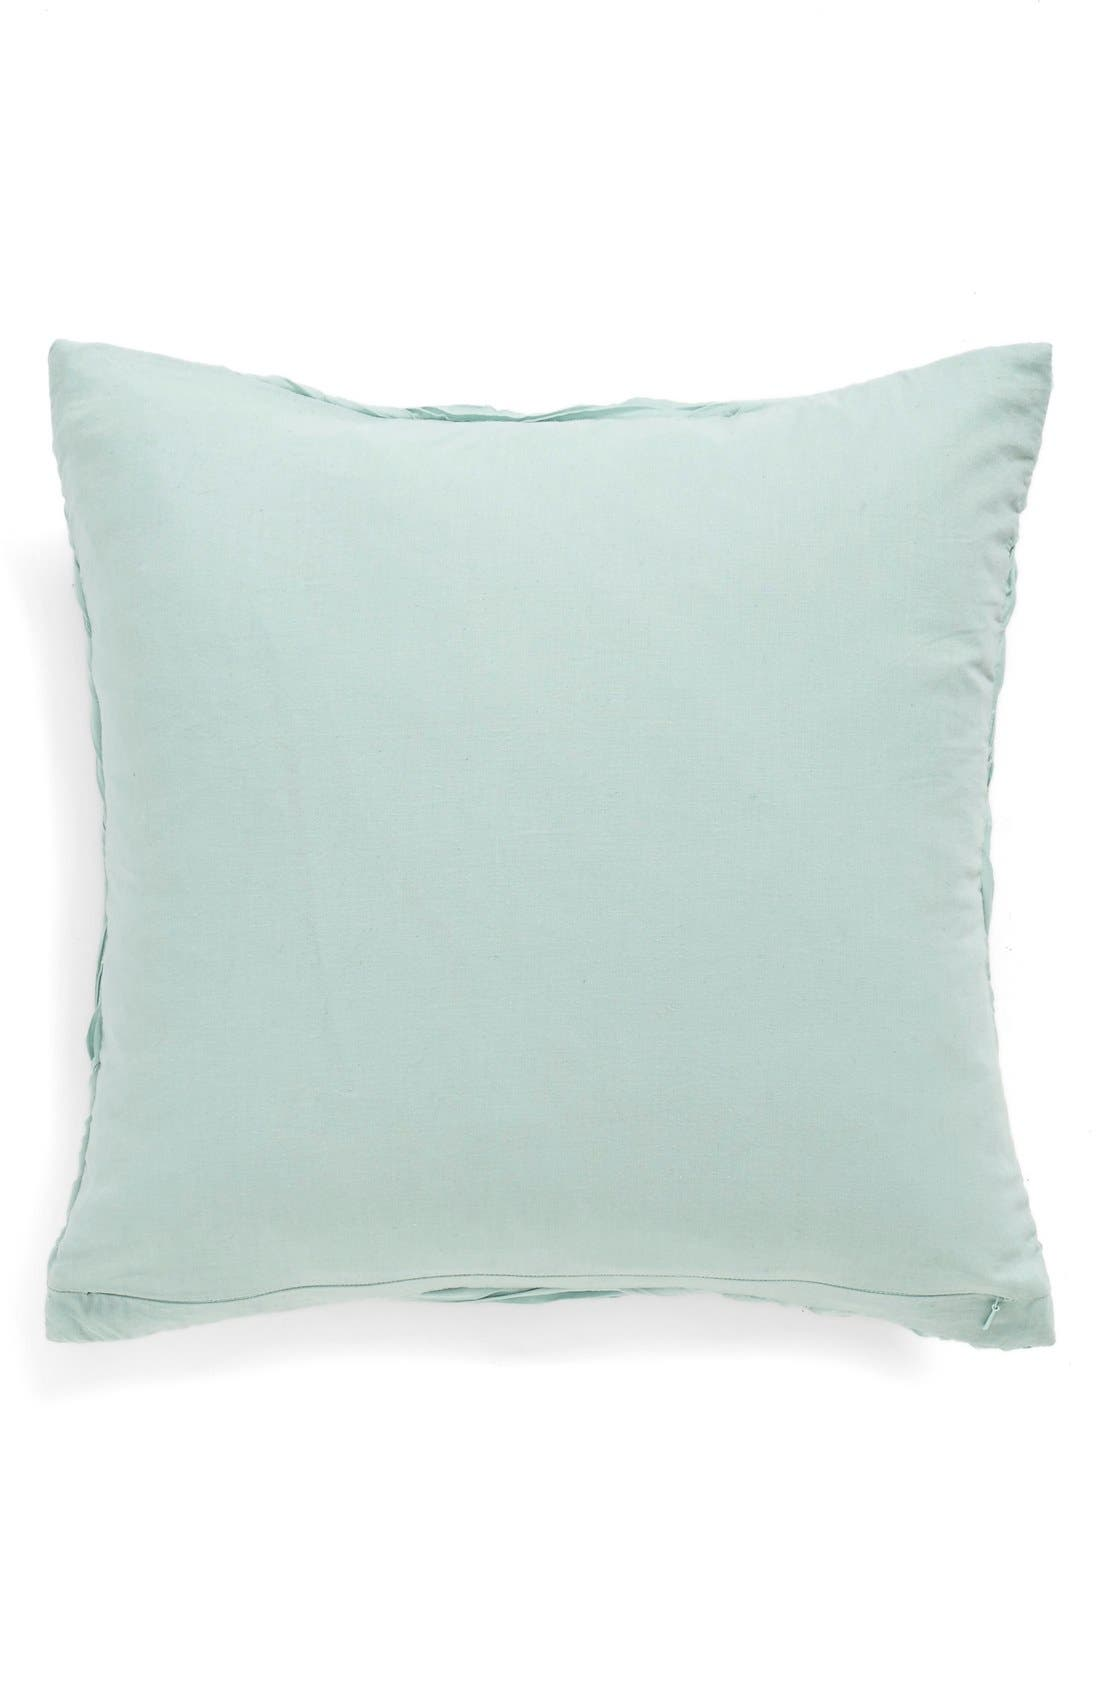 'Full Bloom' Accent Pillow,                             Alternate thumbnail 2, color,                             Teal Mist